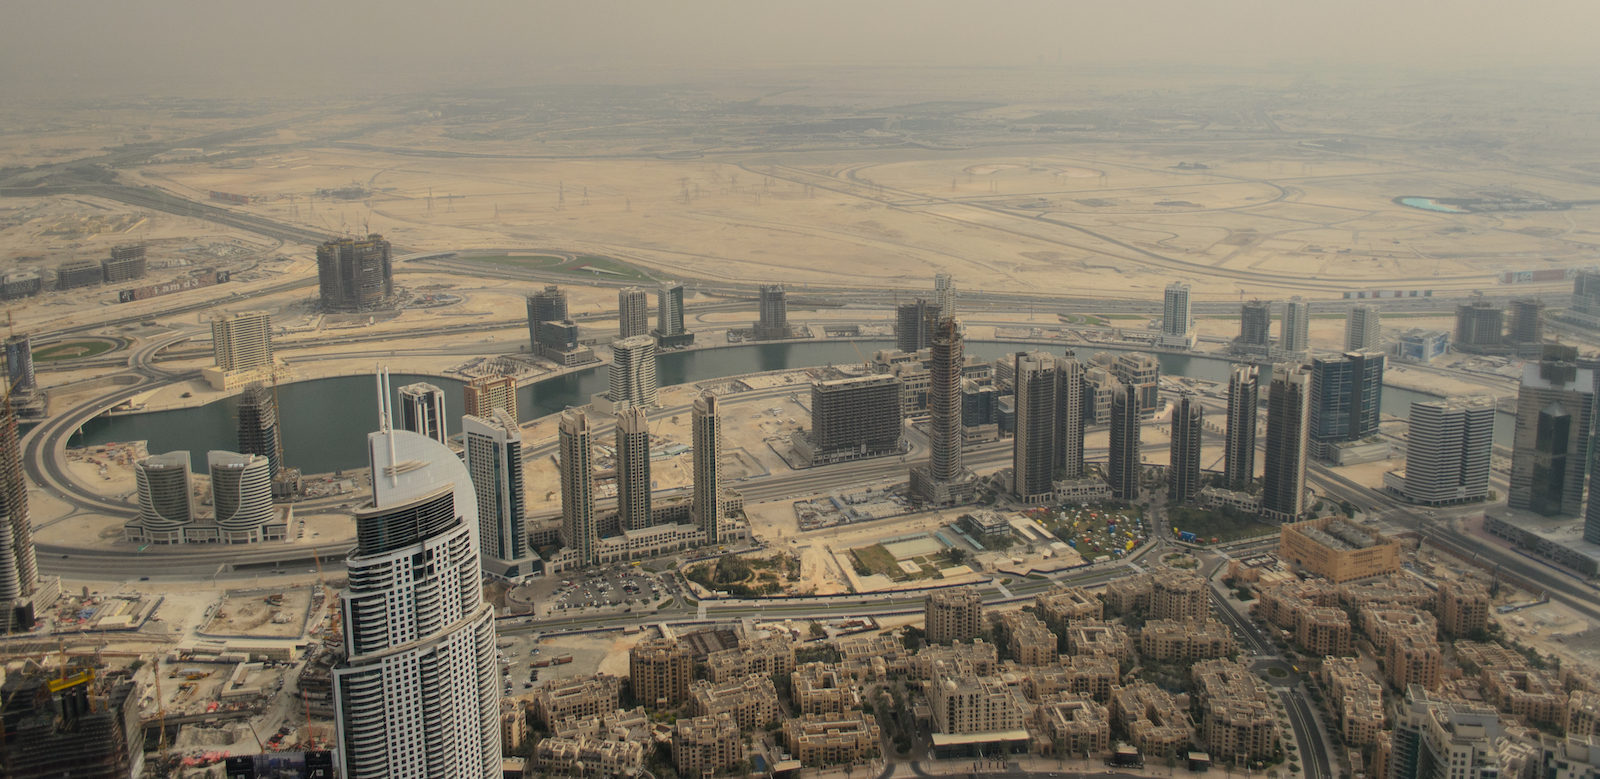 View from the Burj Khalifa: Dubai's glittering surface is getting dusty (Photo: Nasrulla Taha/ Flickr)